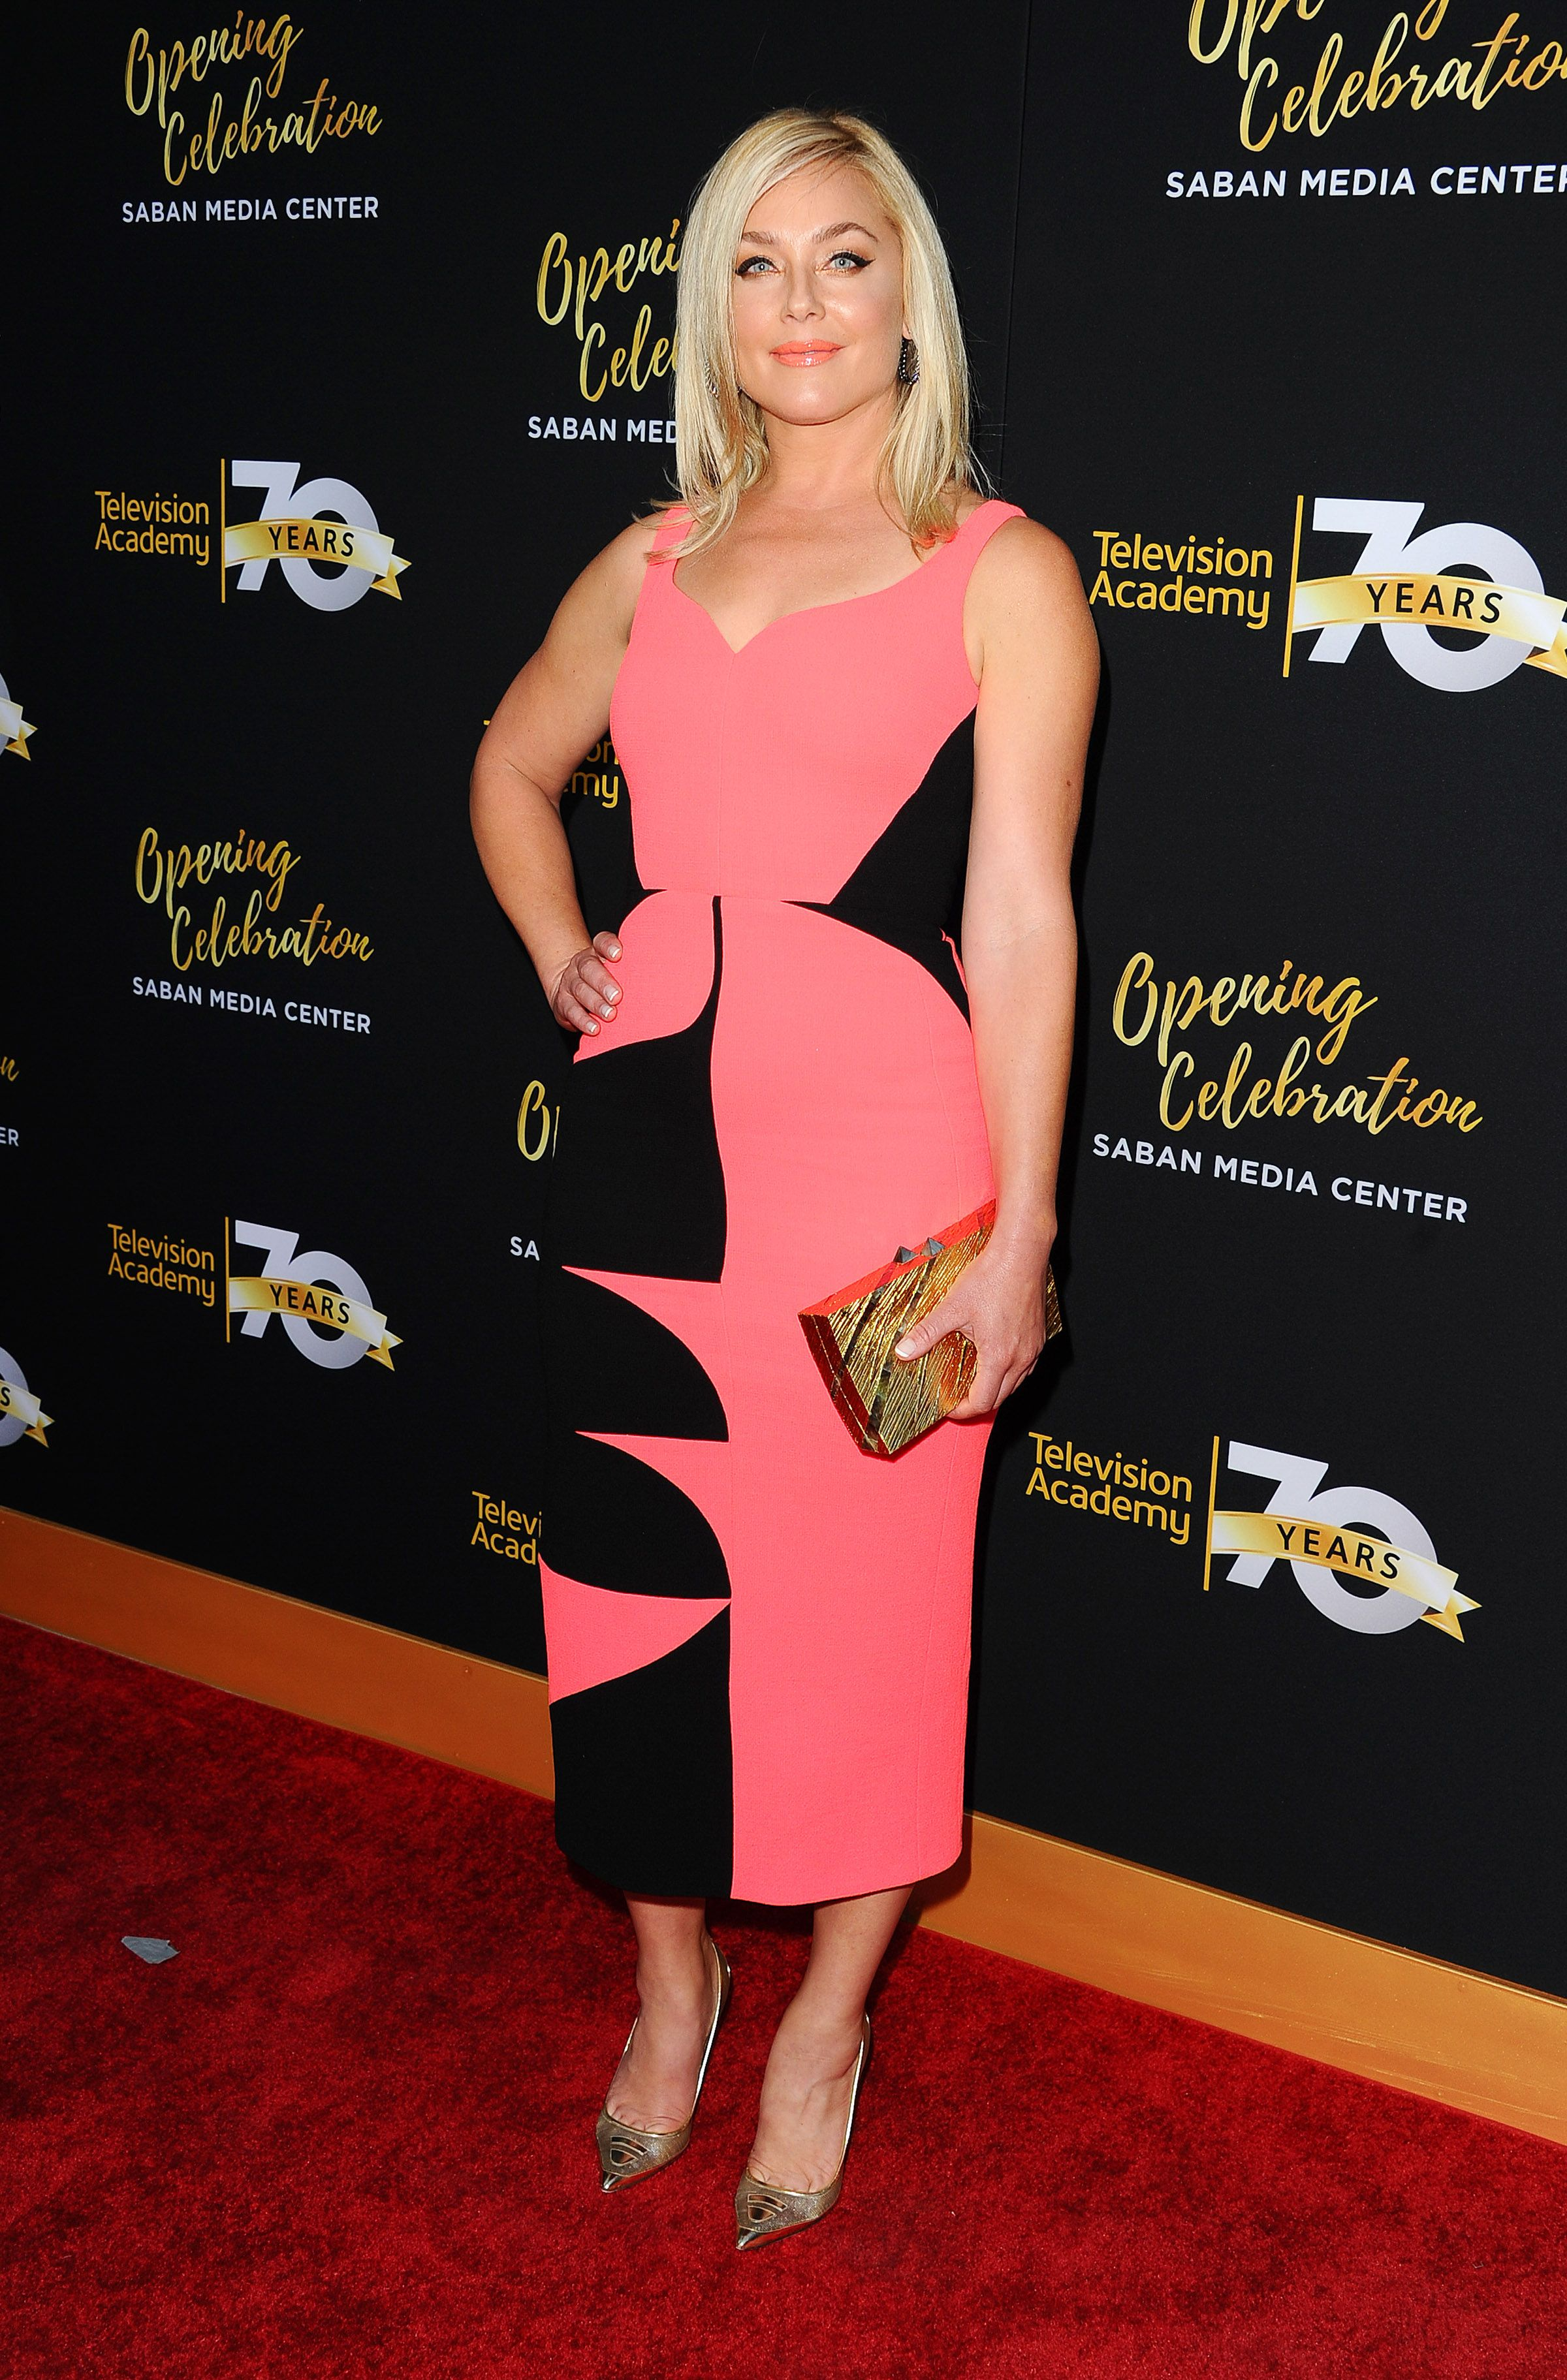 EMM KUO » Elisabeth Rohm carries our 'Gehry' Television Academy 70th Anniversary Celebration, Los Angeles, June 2 2016 #emmkuo #elisabethrohm #LA #fashion